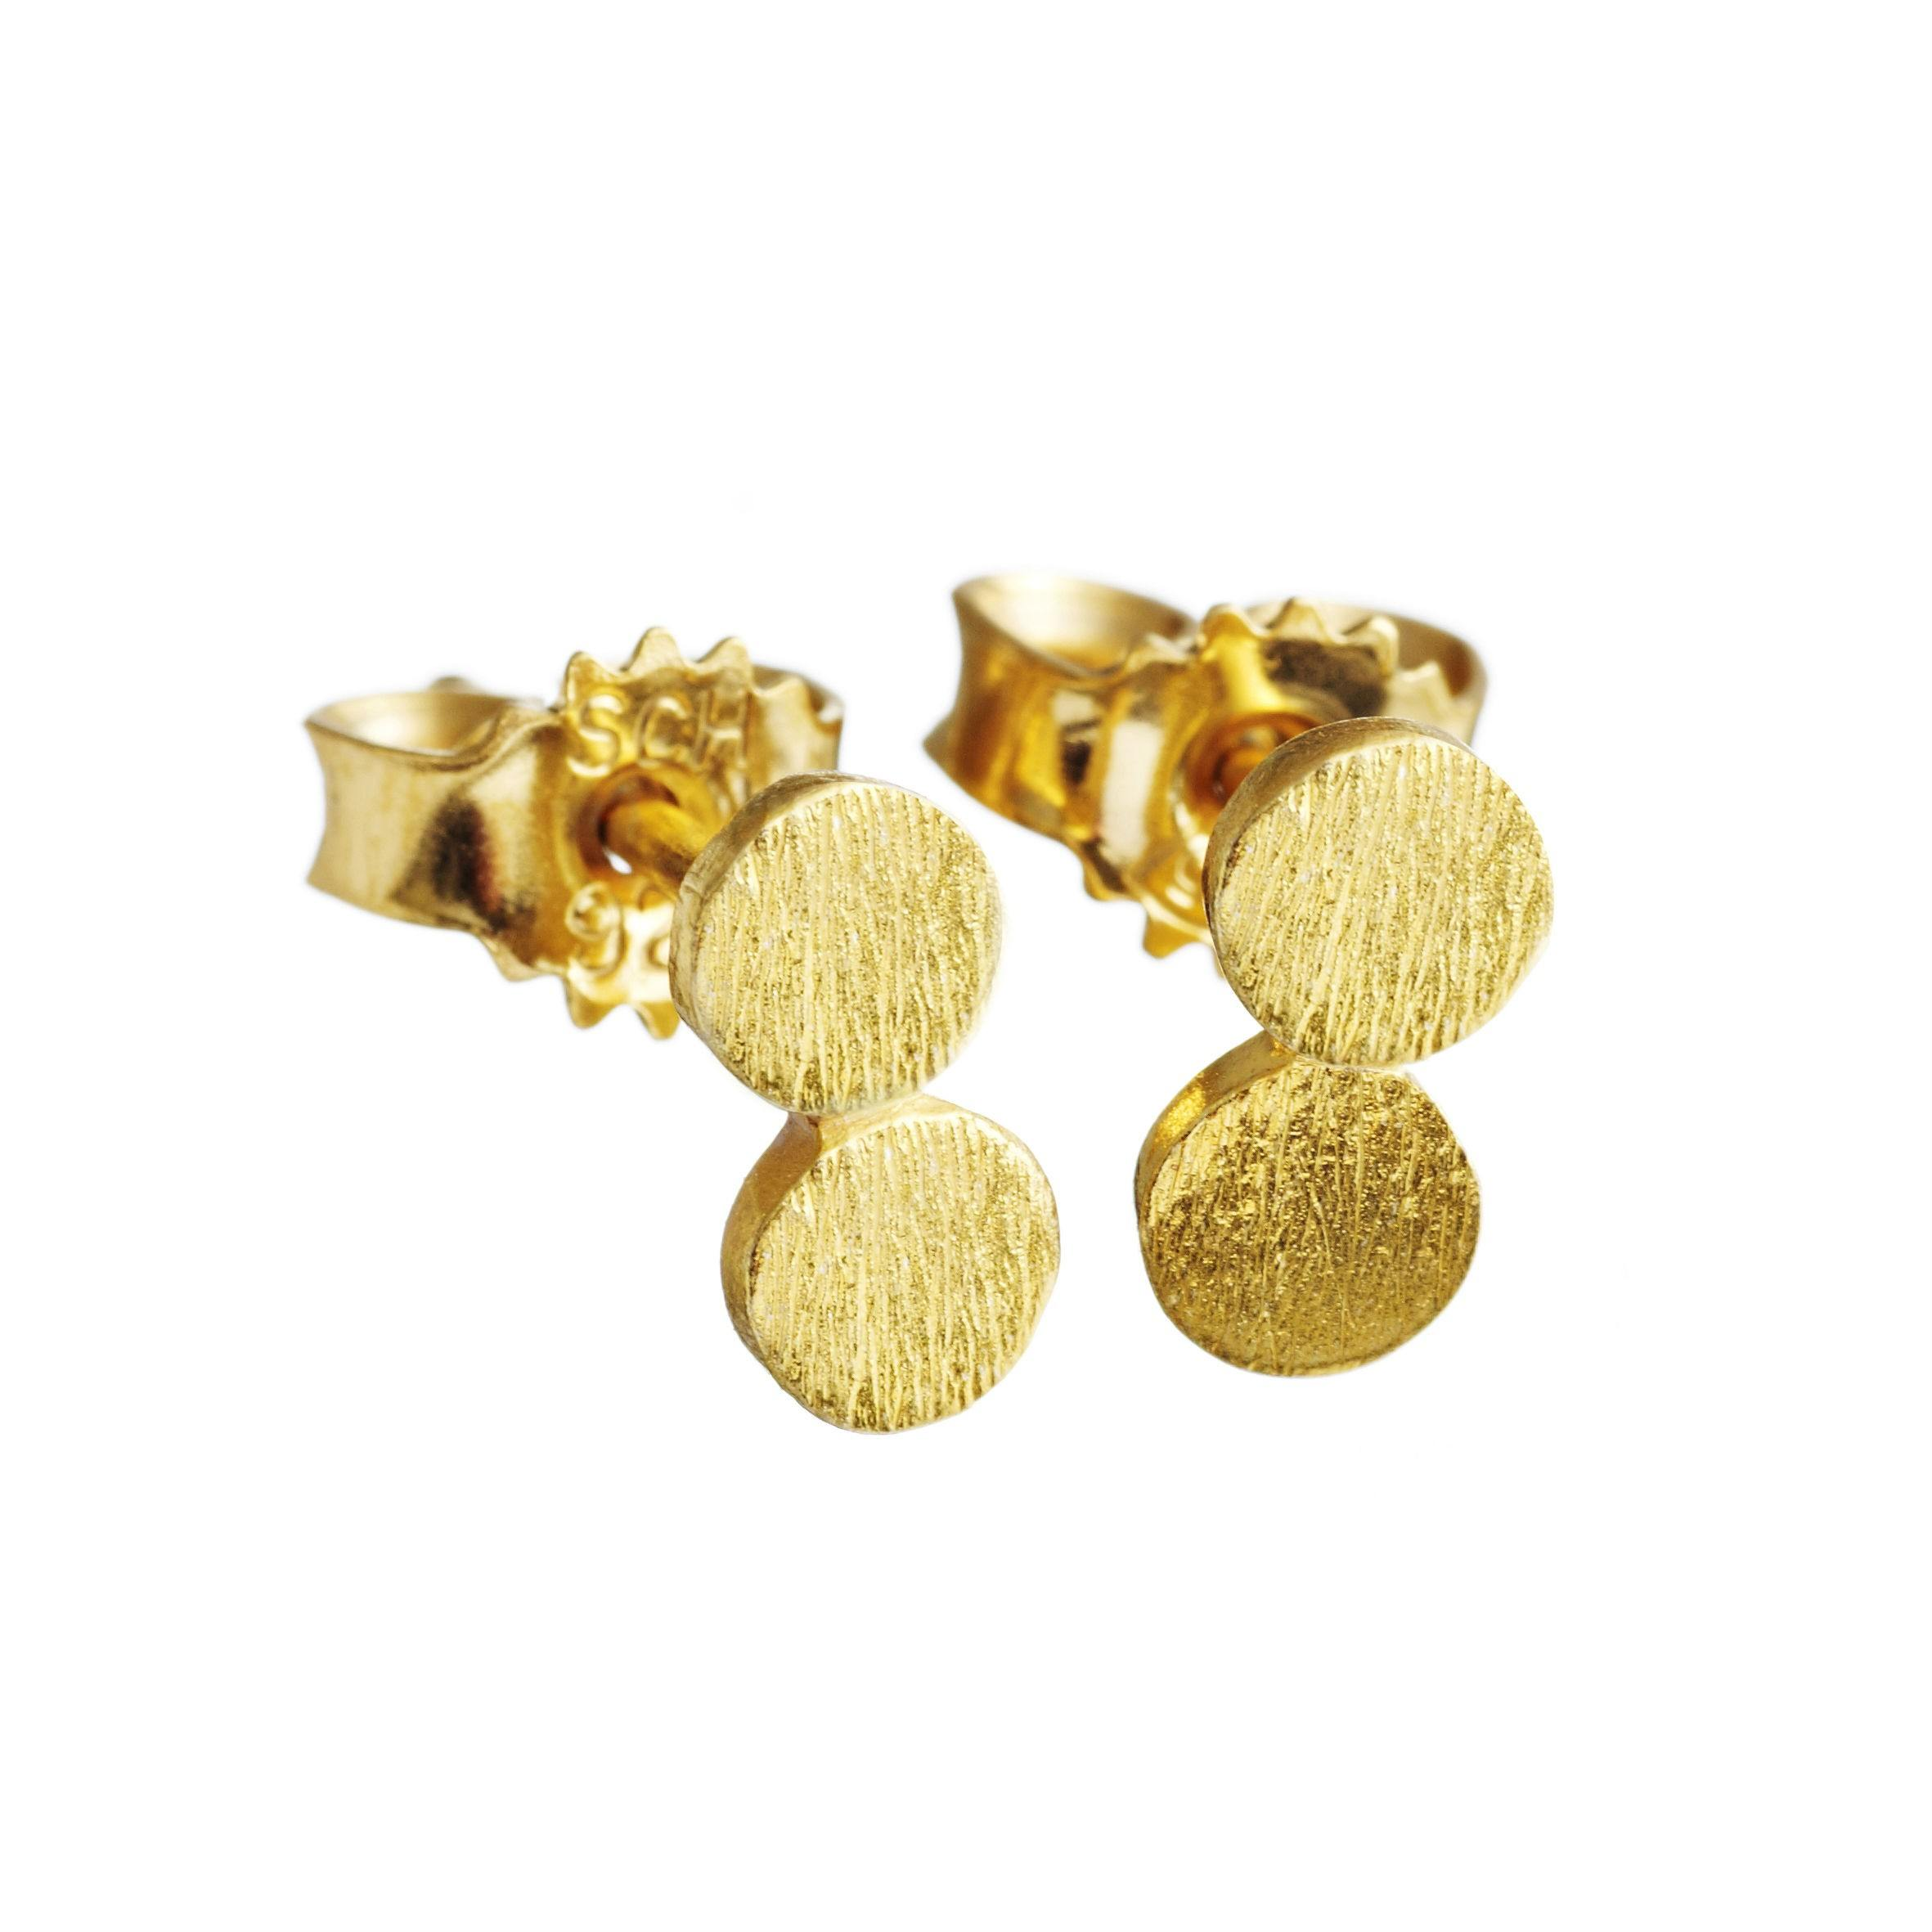 https://www.selecteddesigners.dk/media/catalog/product/c/o/co-1110f-gold.jpg